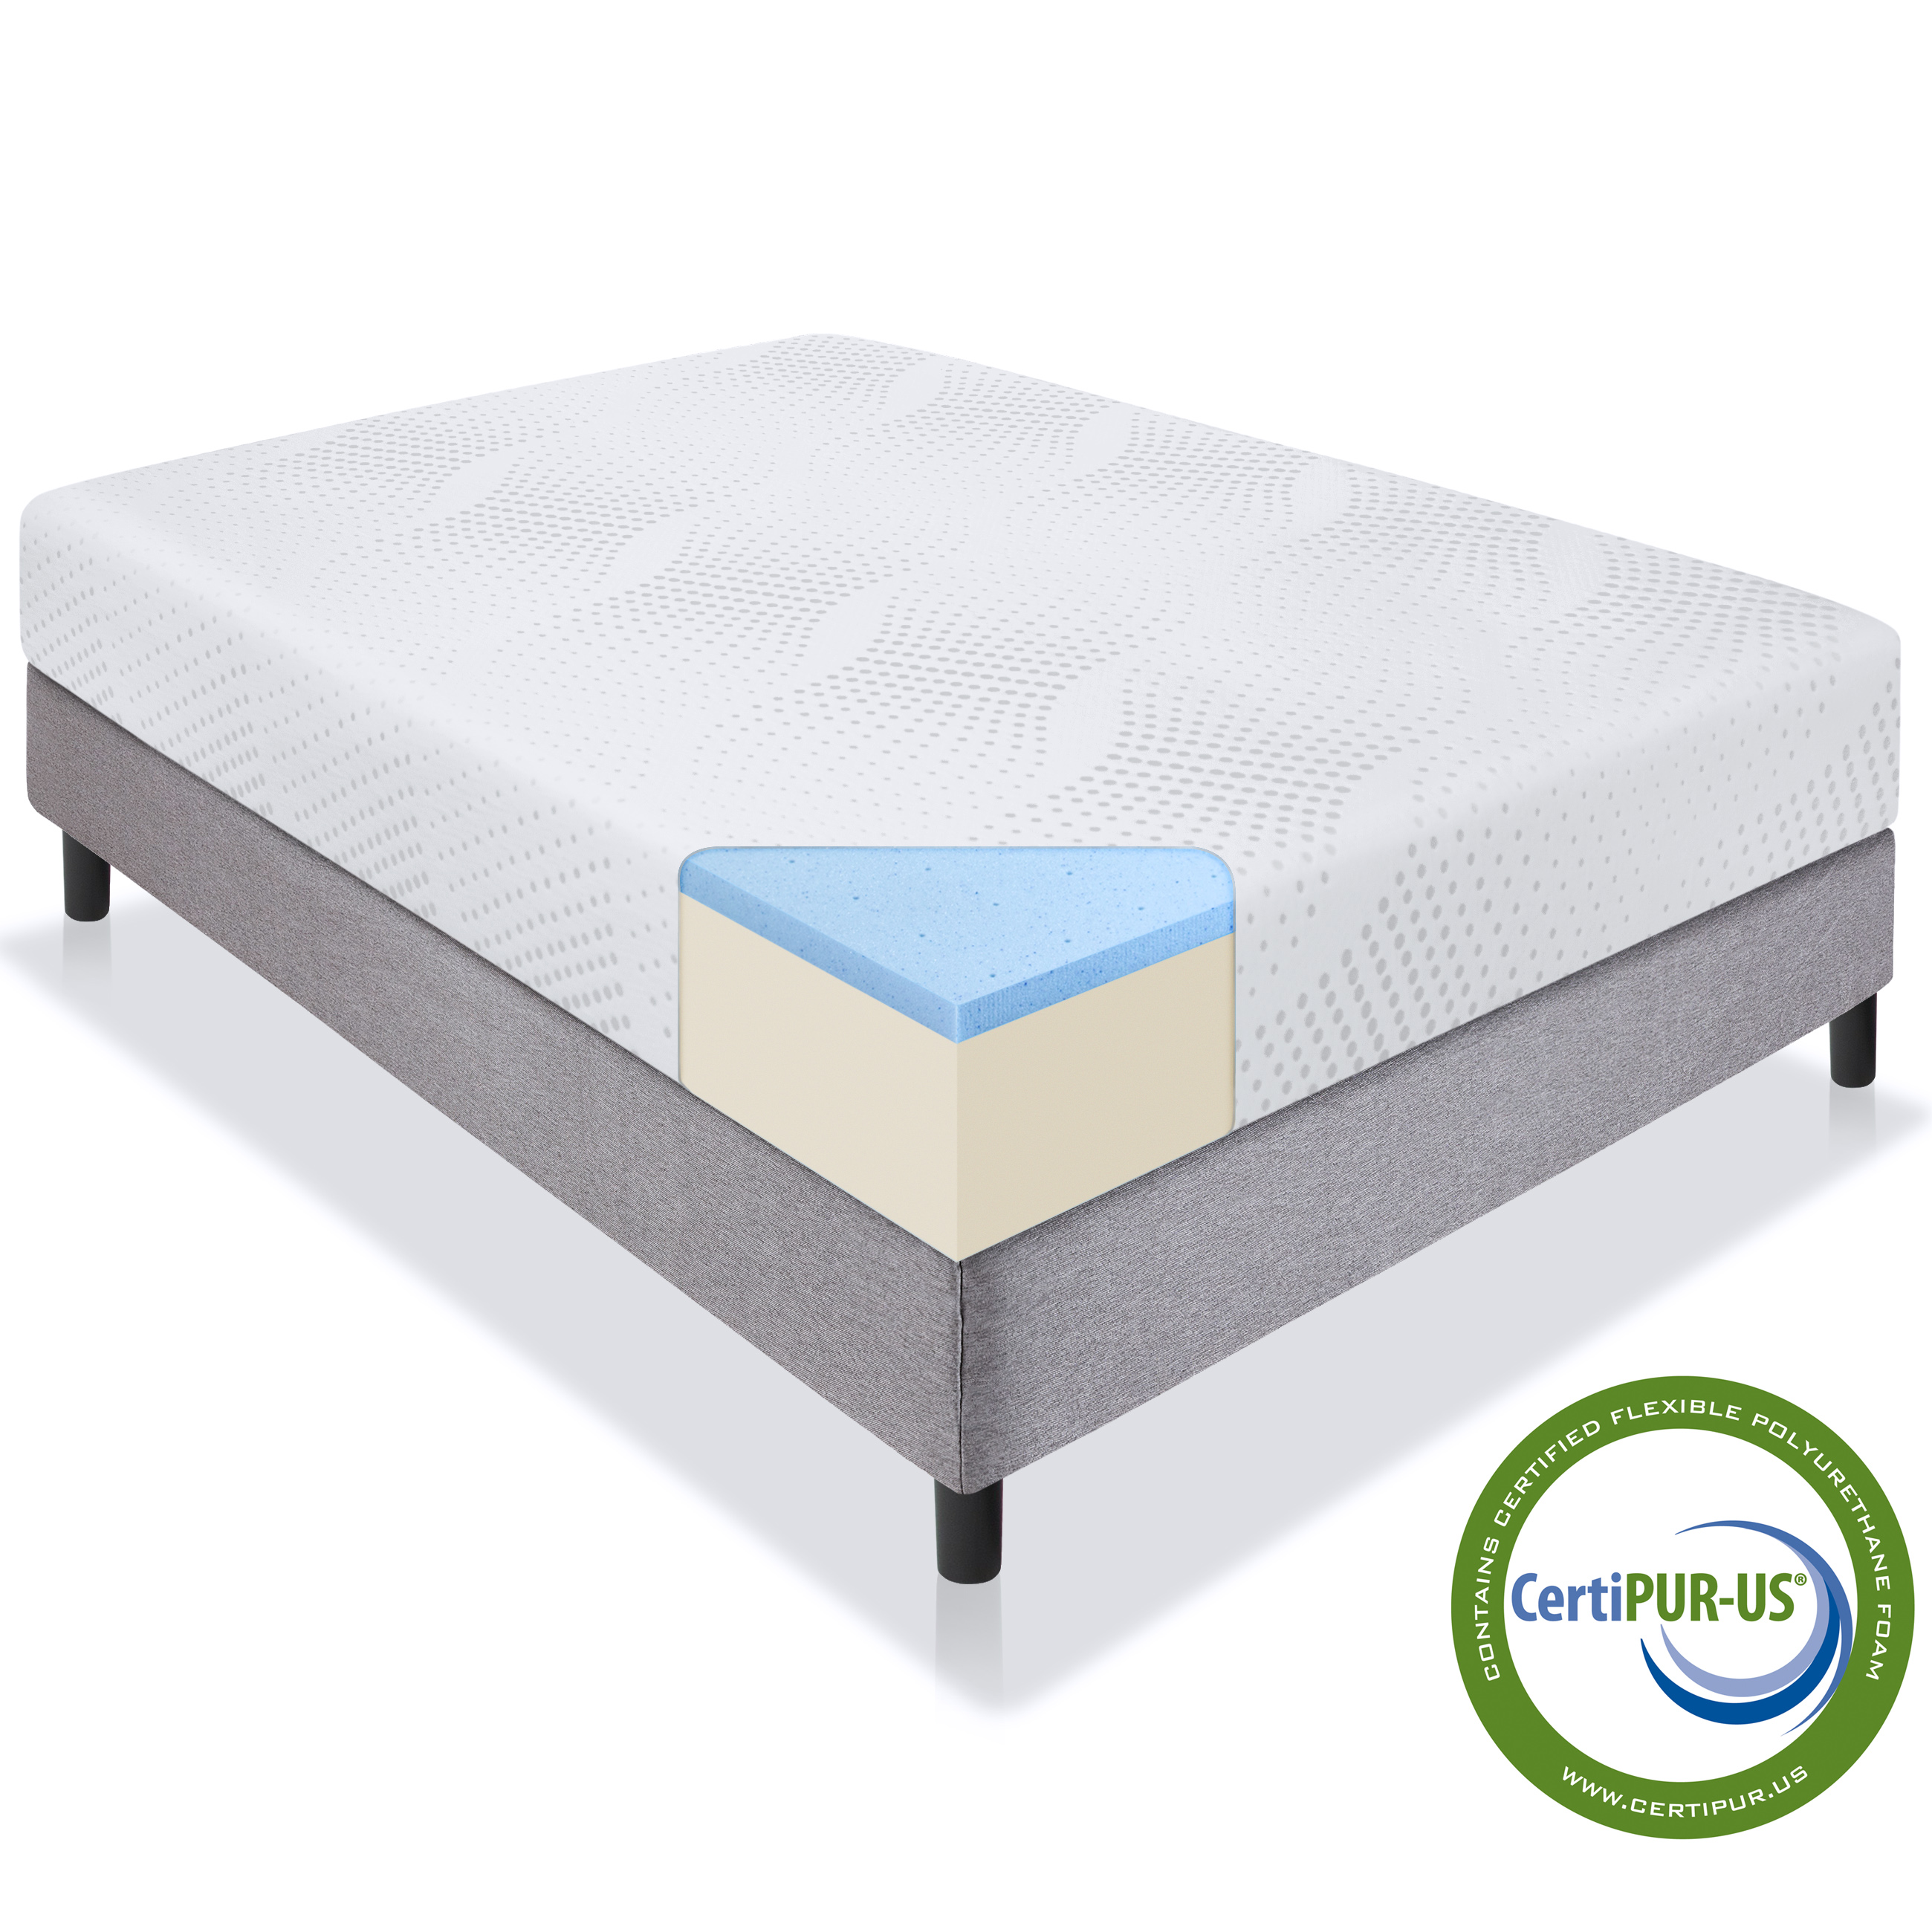 Best Choice Products 10in Full Size Dual Layered Gel Memory Foam Mattress W Certipur Us Certified